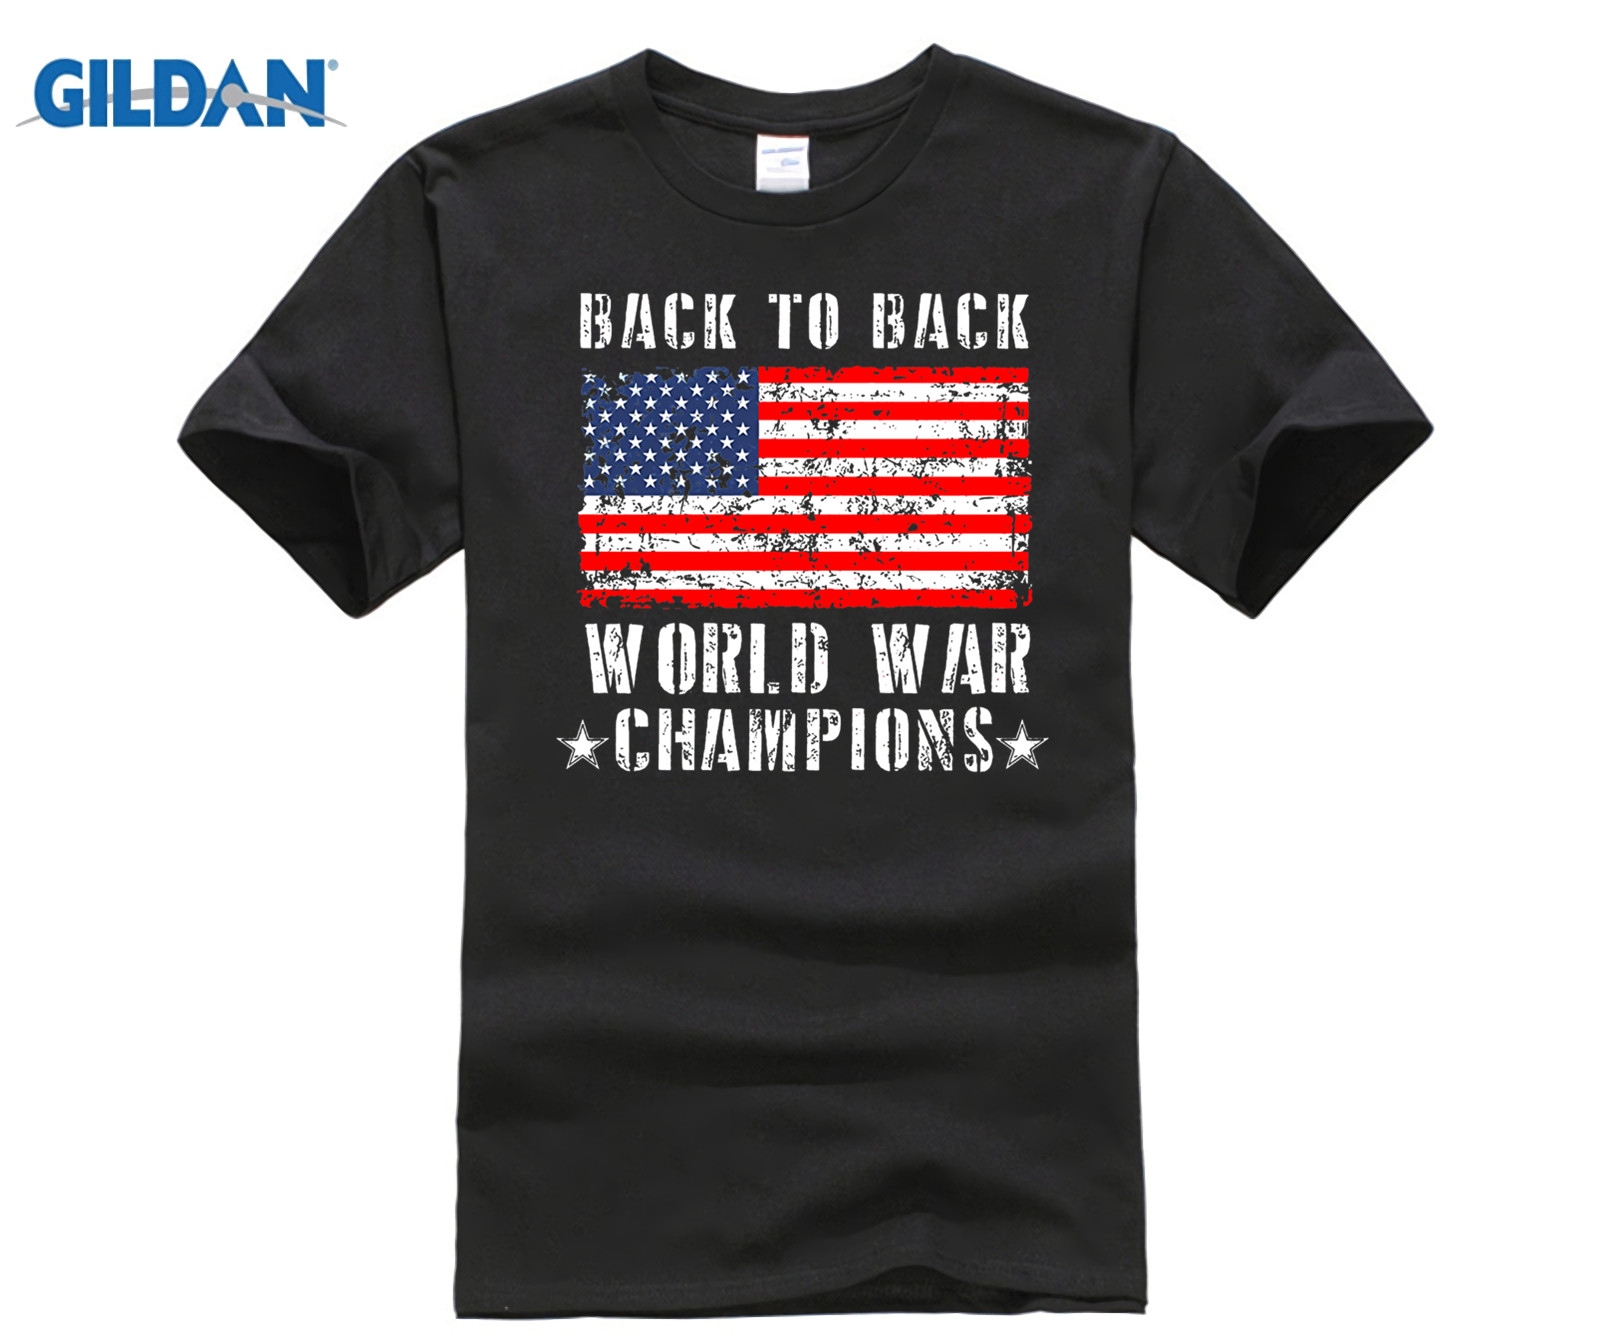 33ddd139d GILDAN Back to Back World War Champions T shirt Patriotic USA Tee-in ...